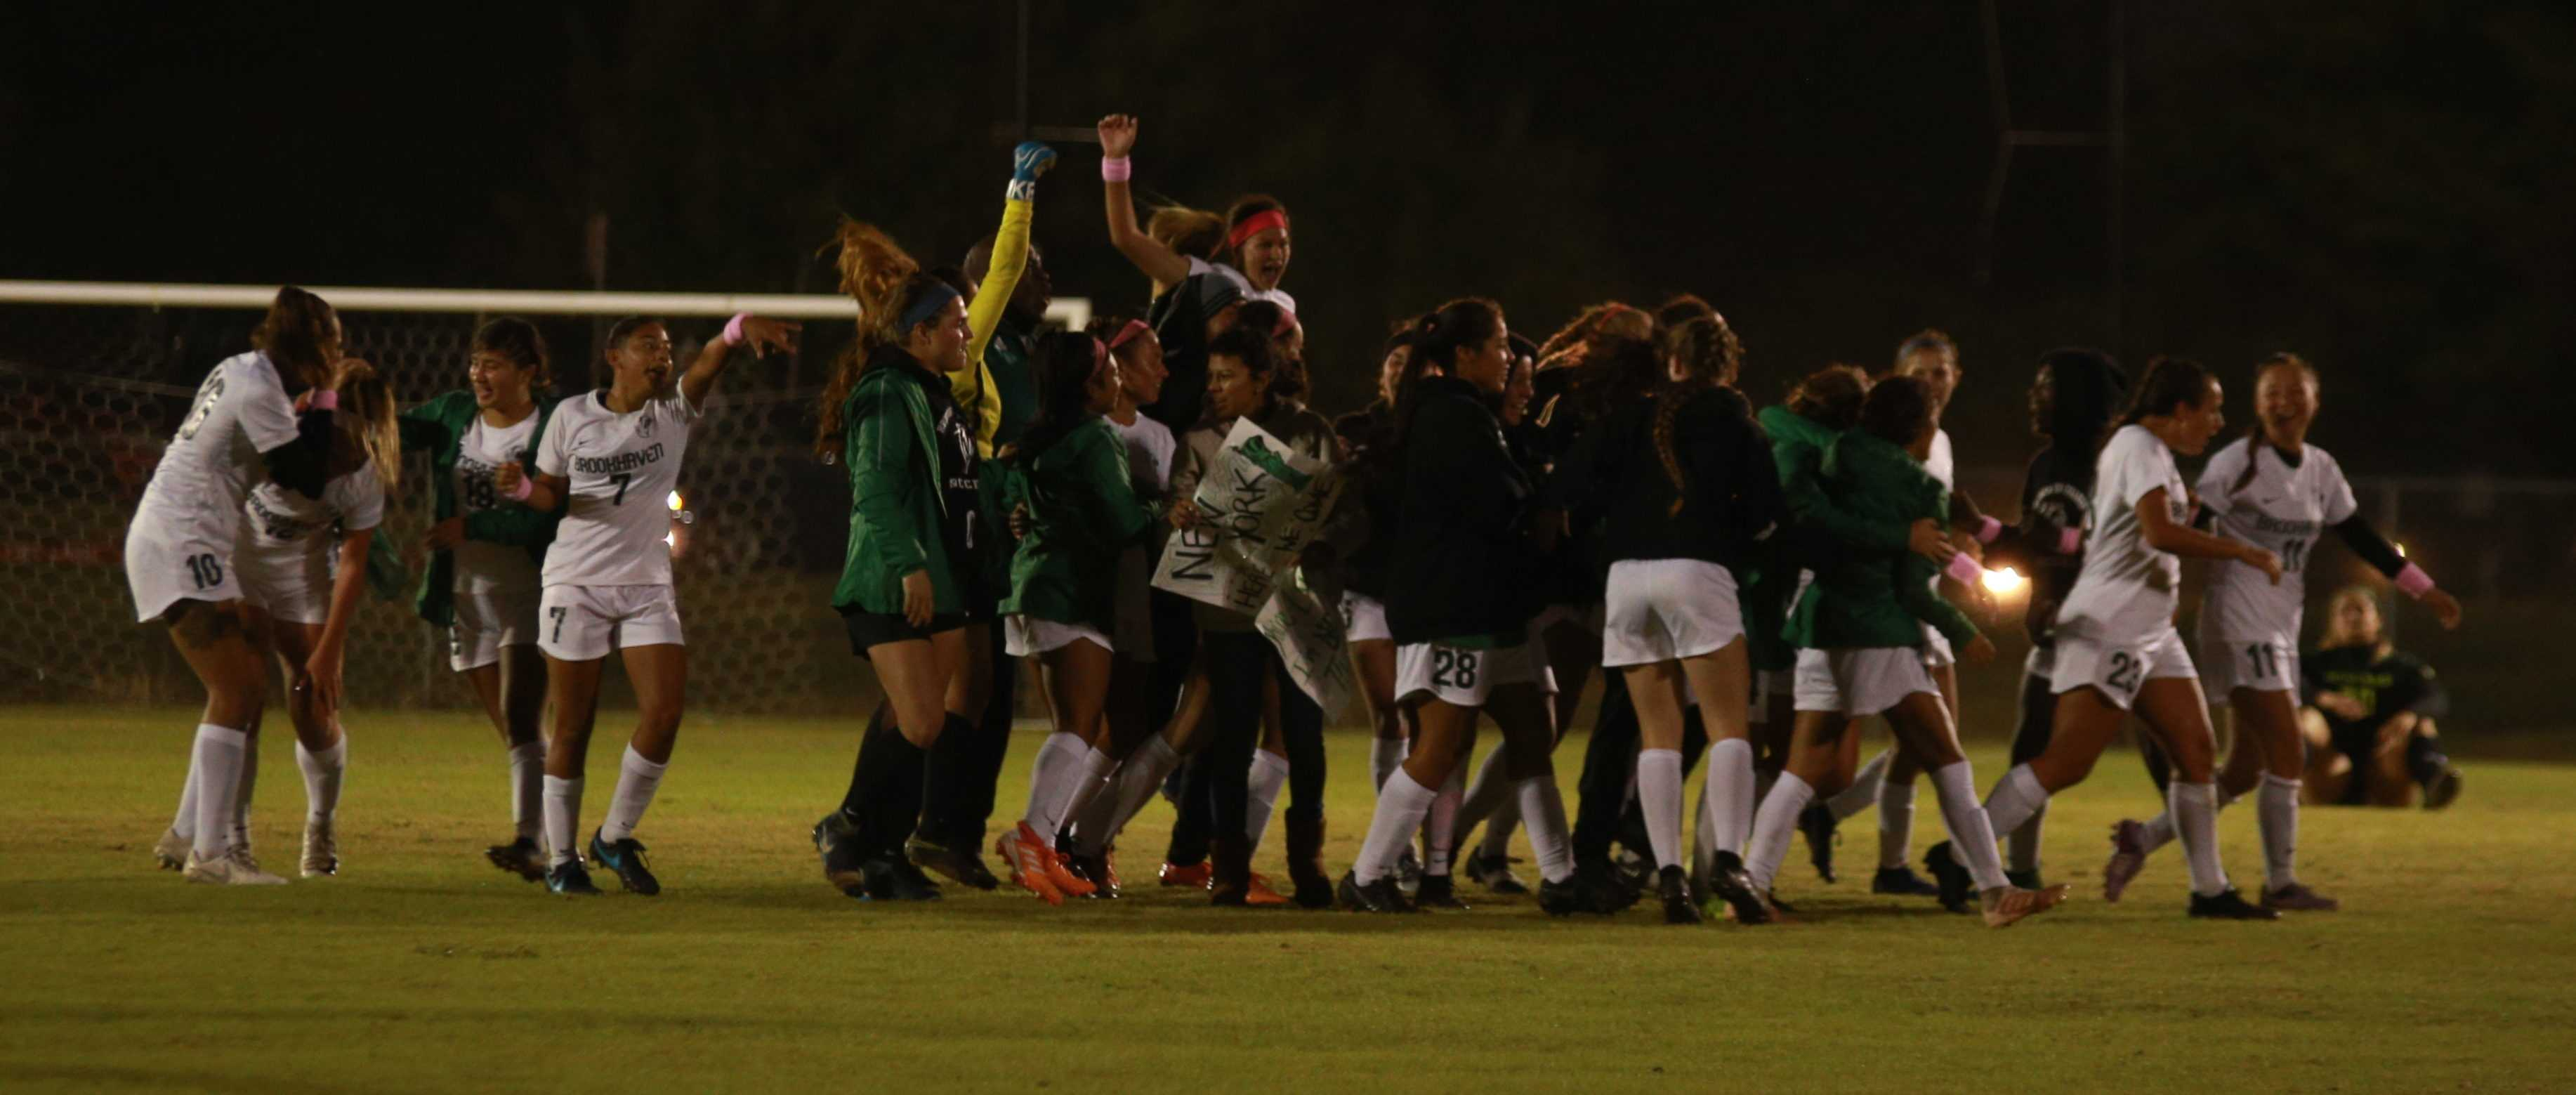 Lady Bears No.1, headed to nationals